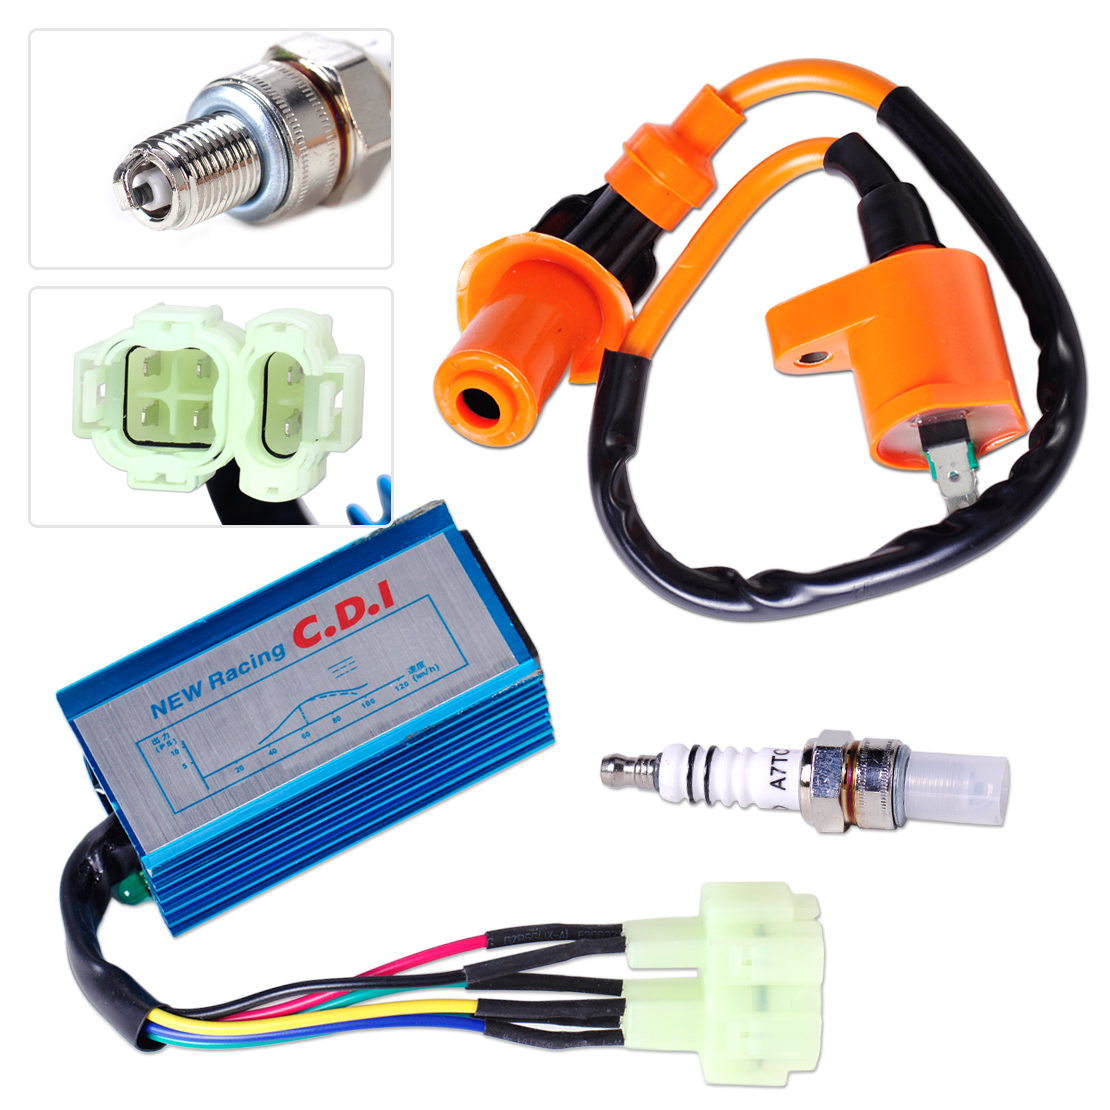 Aliexpress.com : Buy DWCX Performance Ignition Coil + Spark Plug + + Wire  CDI Box for GY6 50cc 90cc 125cc 150cc Scooter ATV Go Kart Moped Dirt bike  from ...